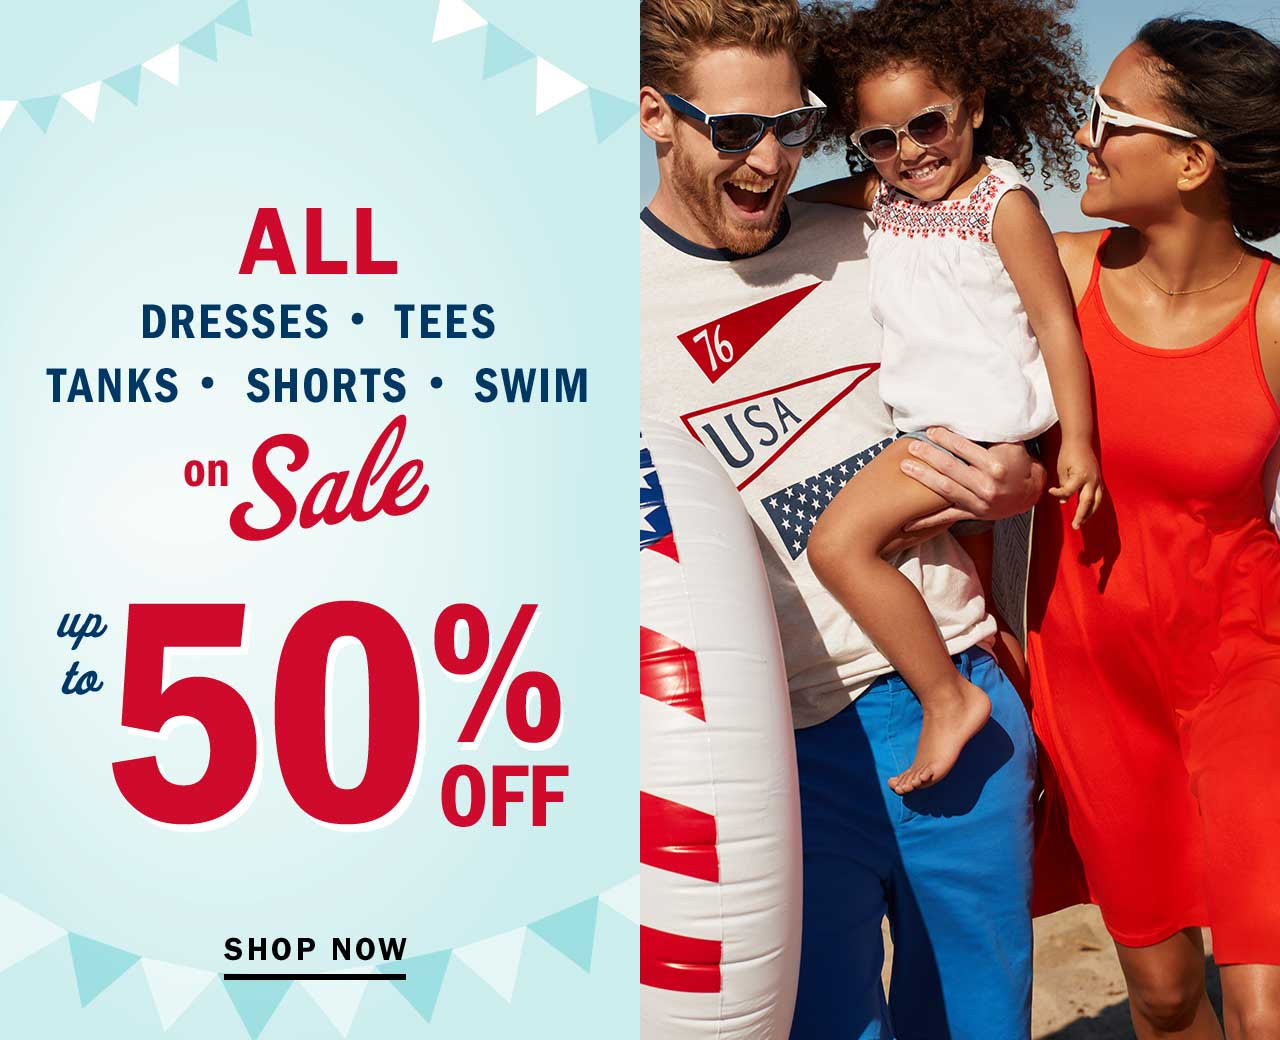 up to 50% OFF | SHOP NOW